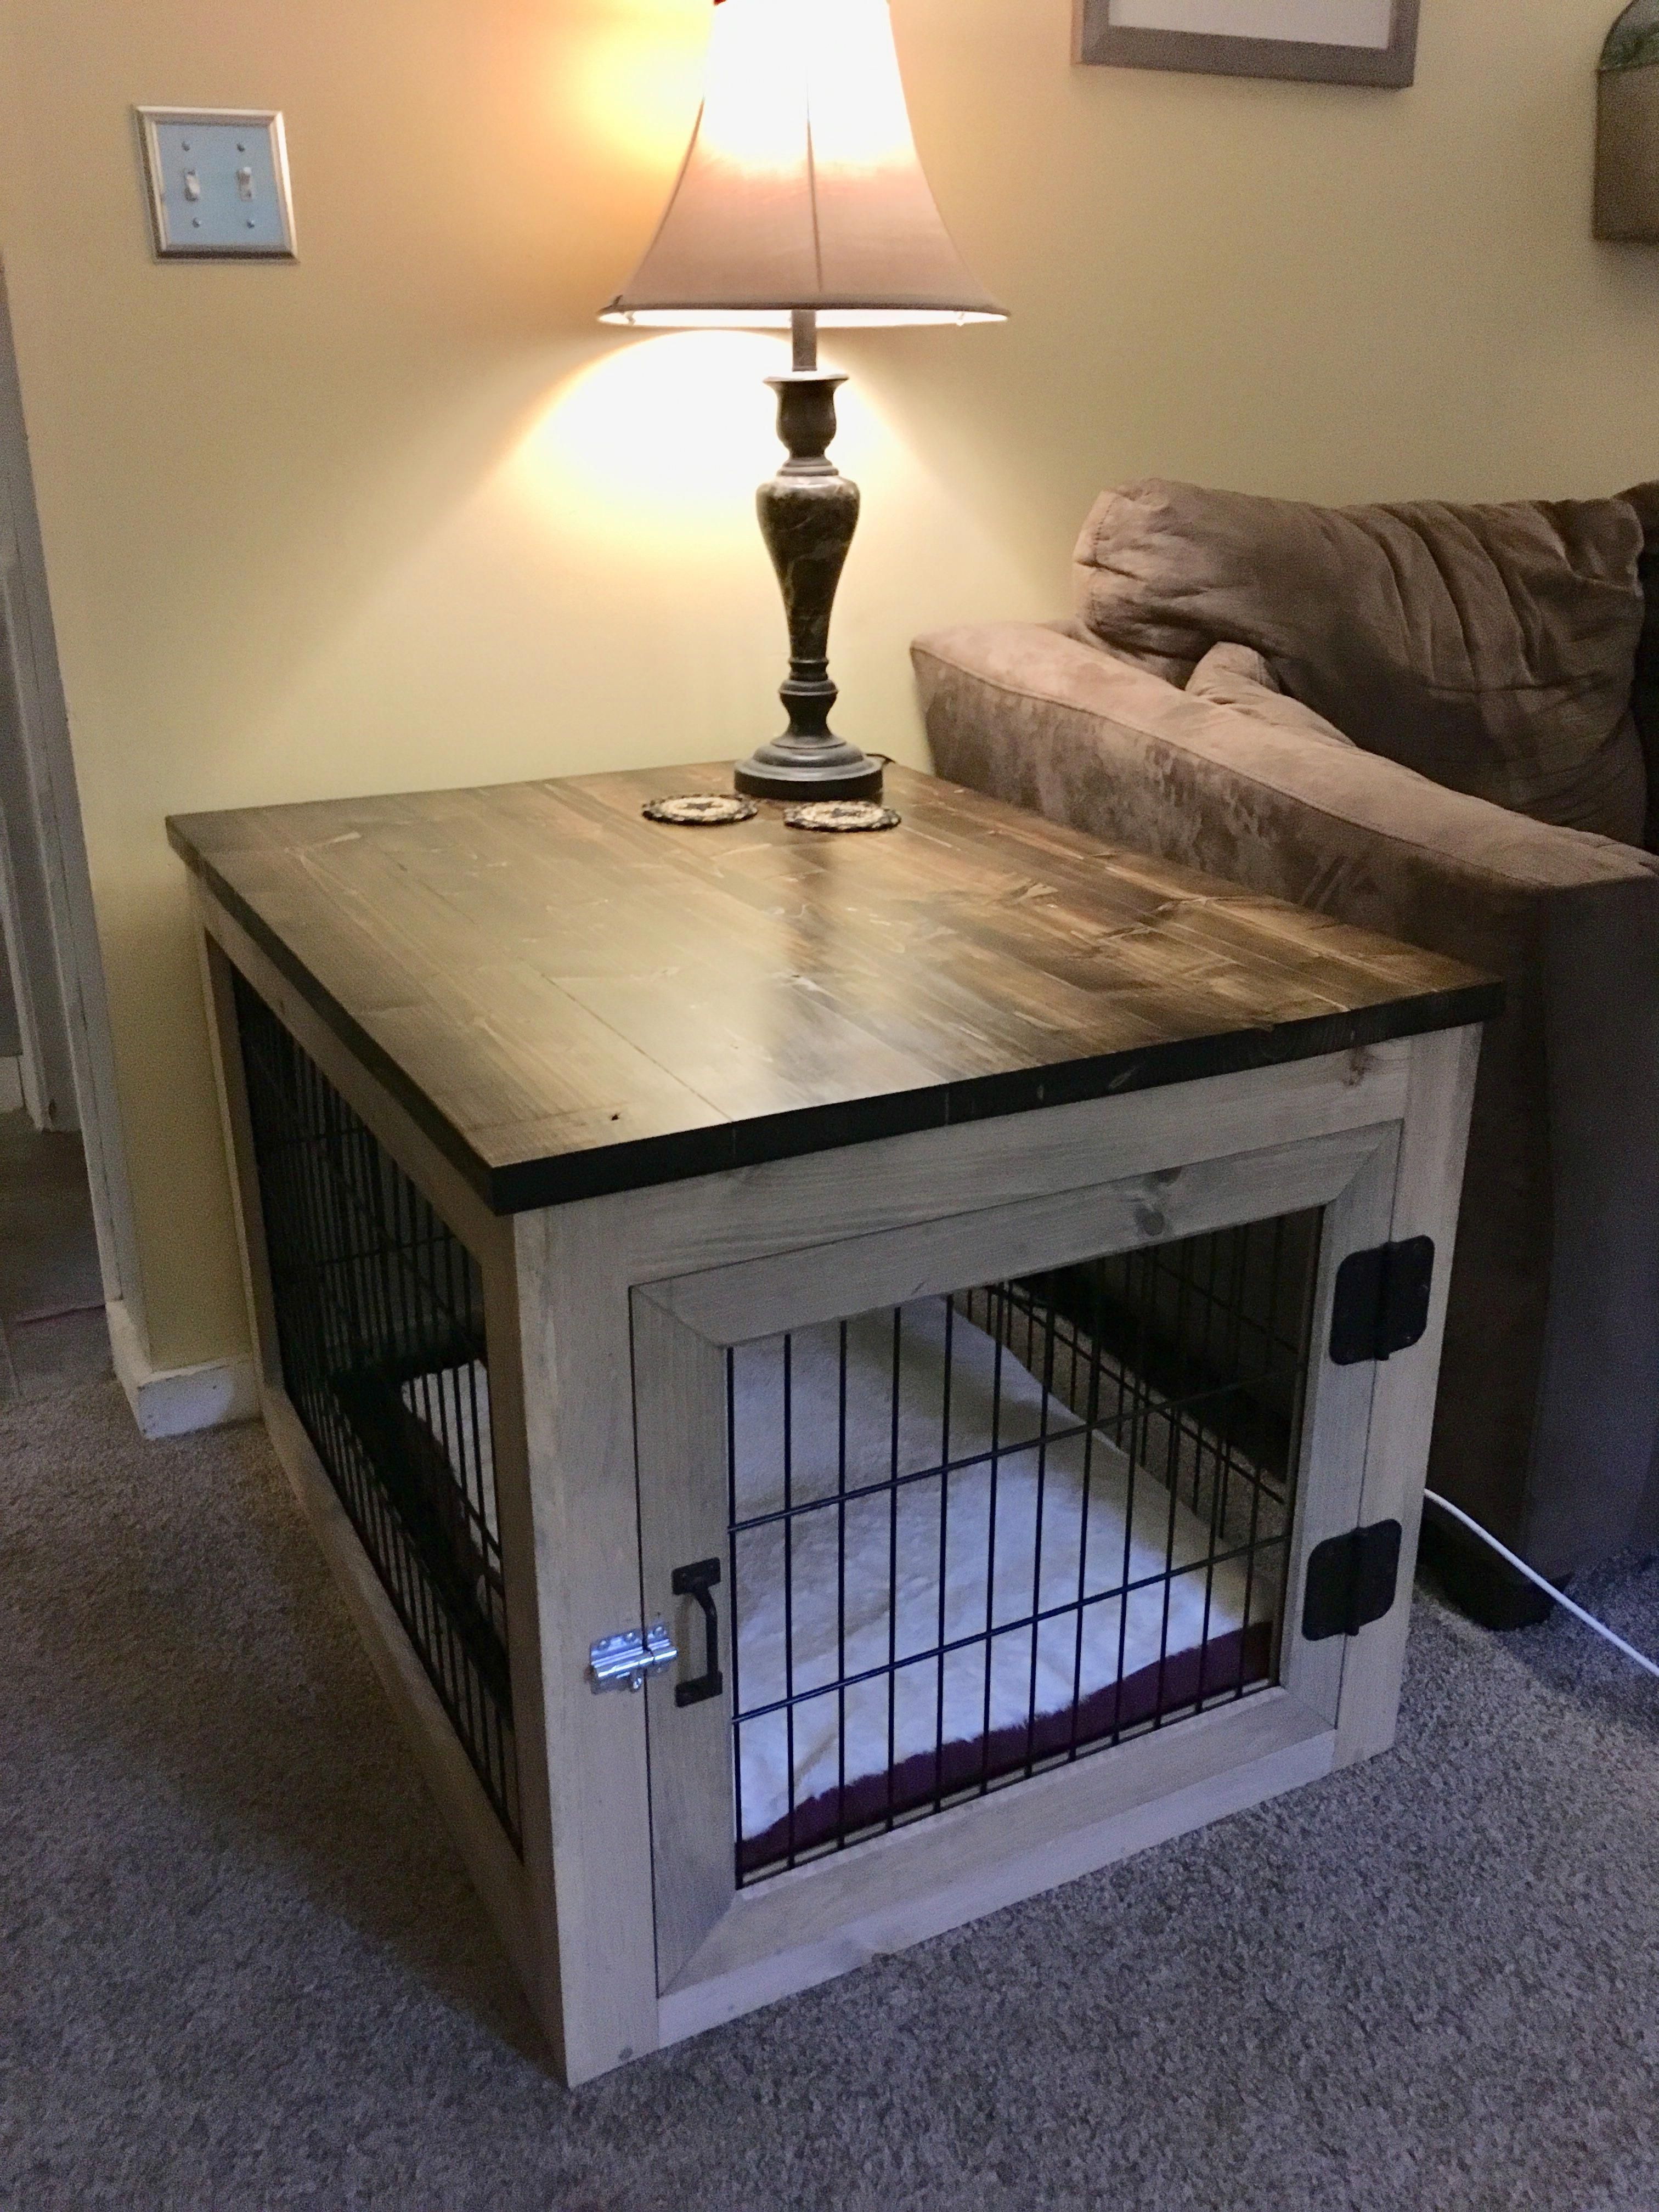 dog kennel bed dogkennelbed Dog crate end table, Crate